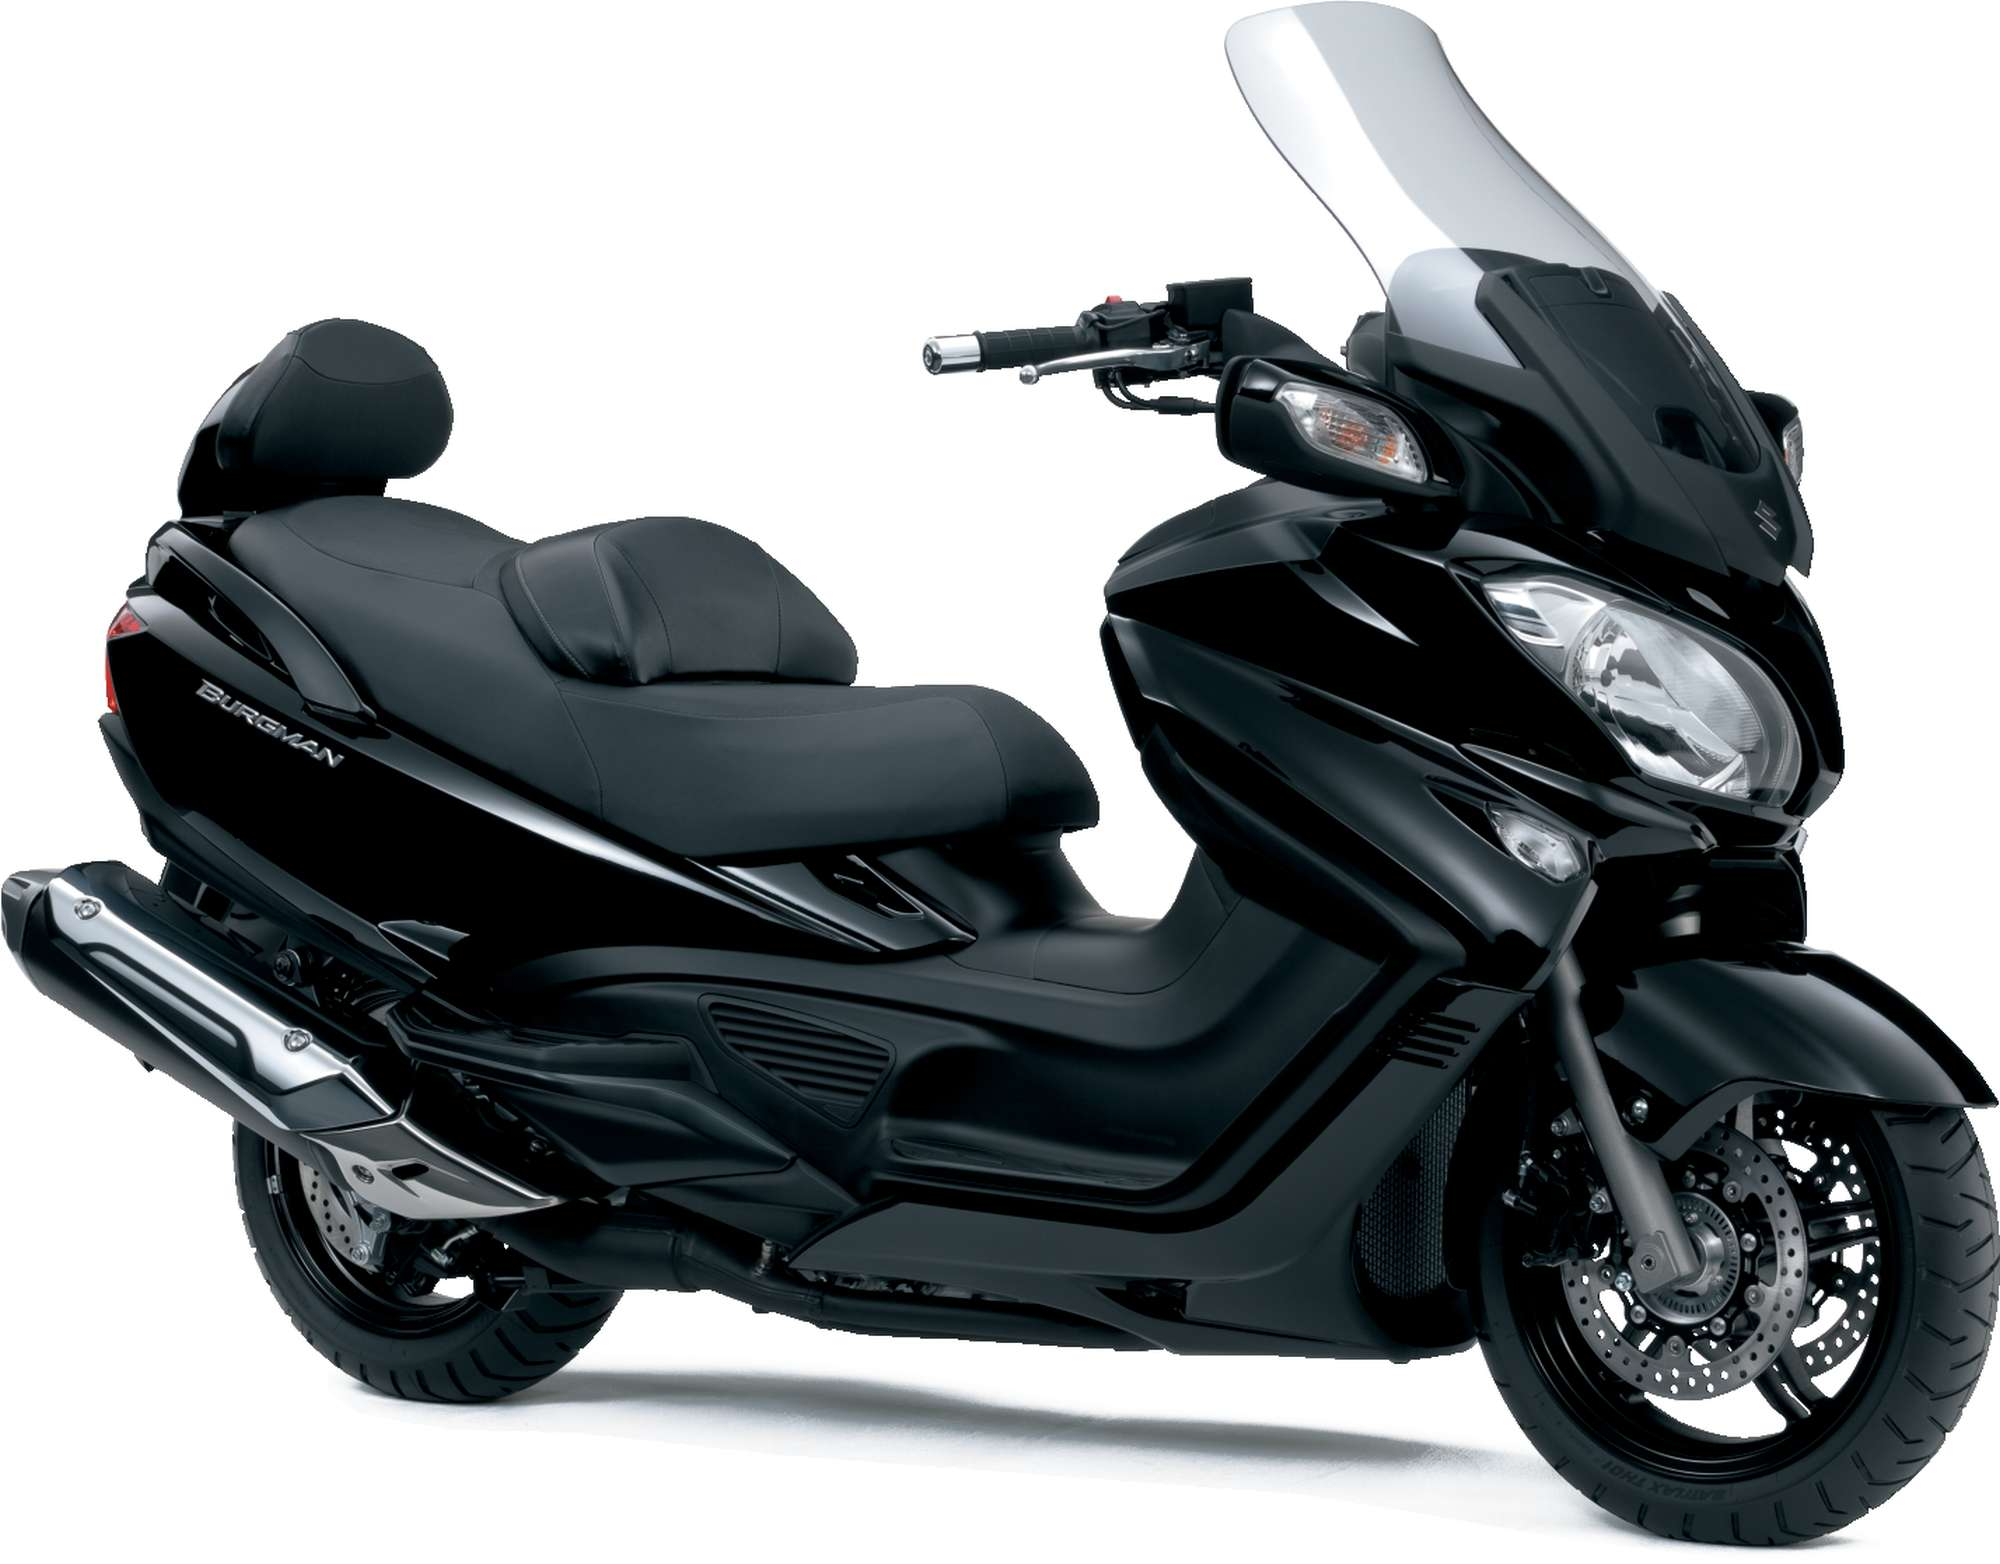 2010 Suzuki Burgman 650 ABS Executive #1